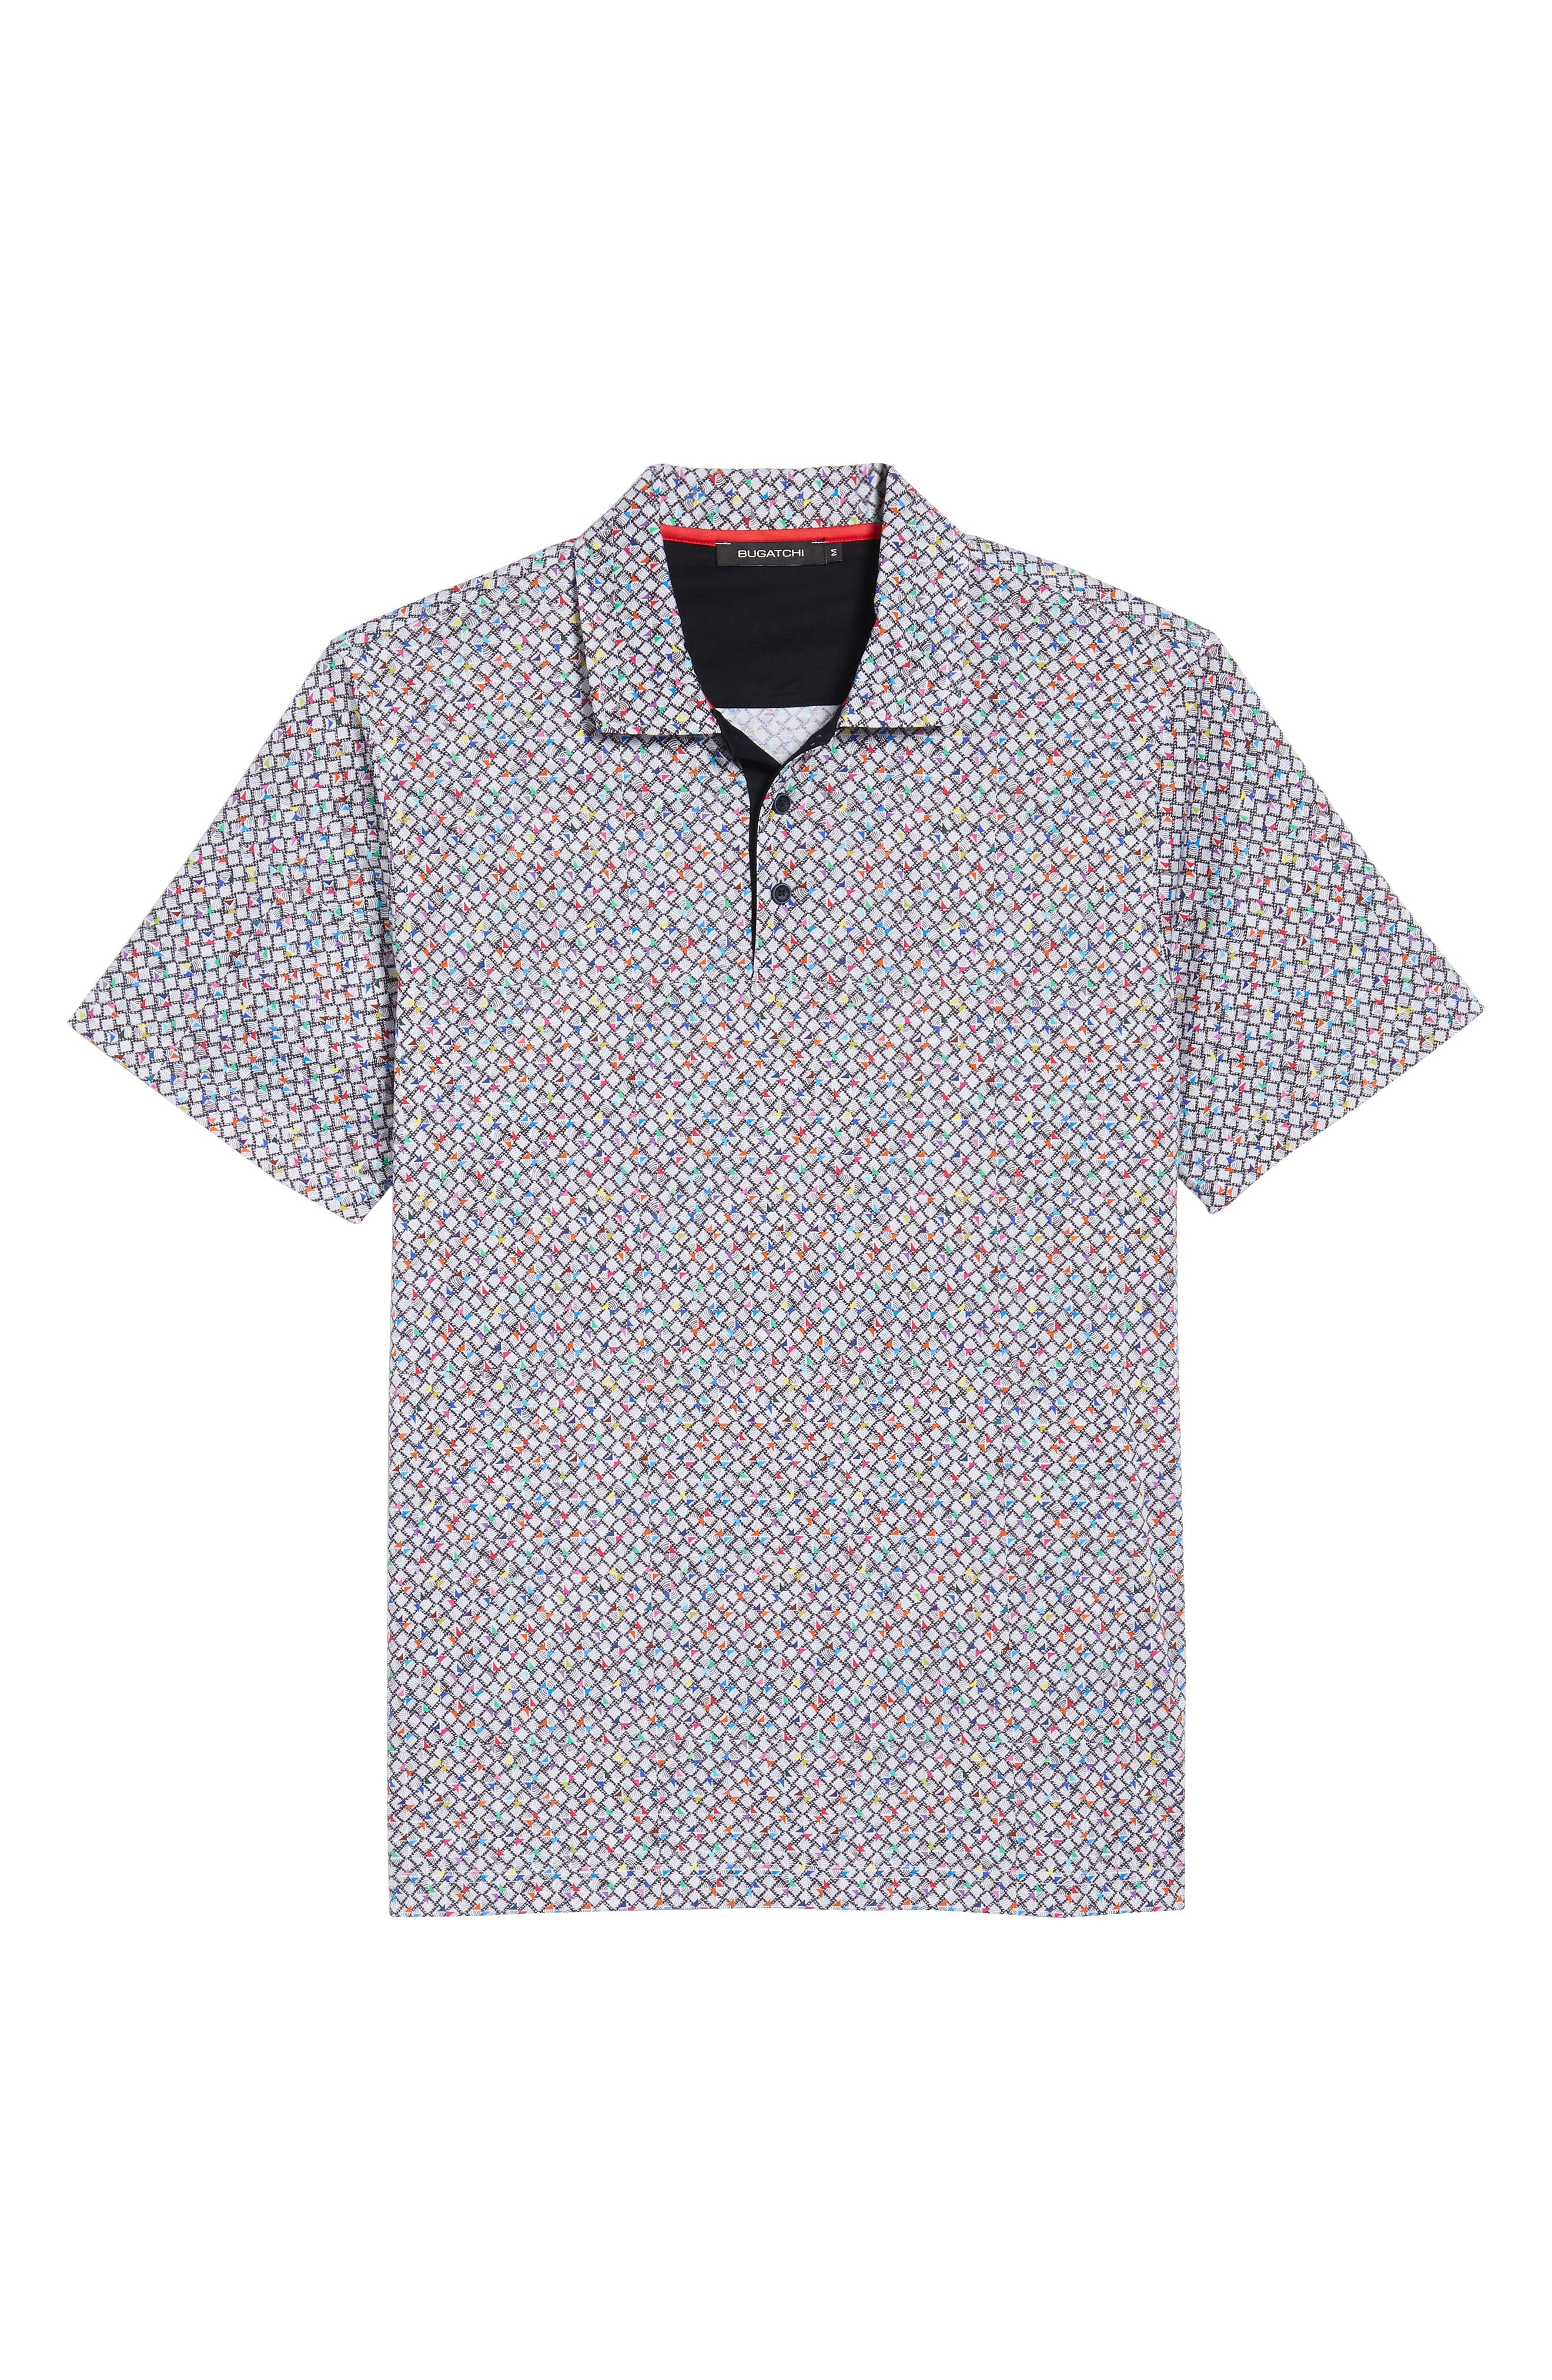 Regular Fit Knit Polo,                             Alternate thumbnail 6, color,                             021